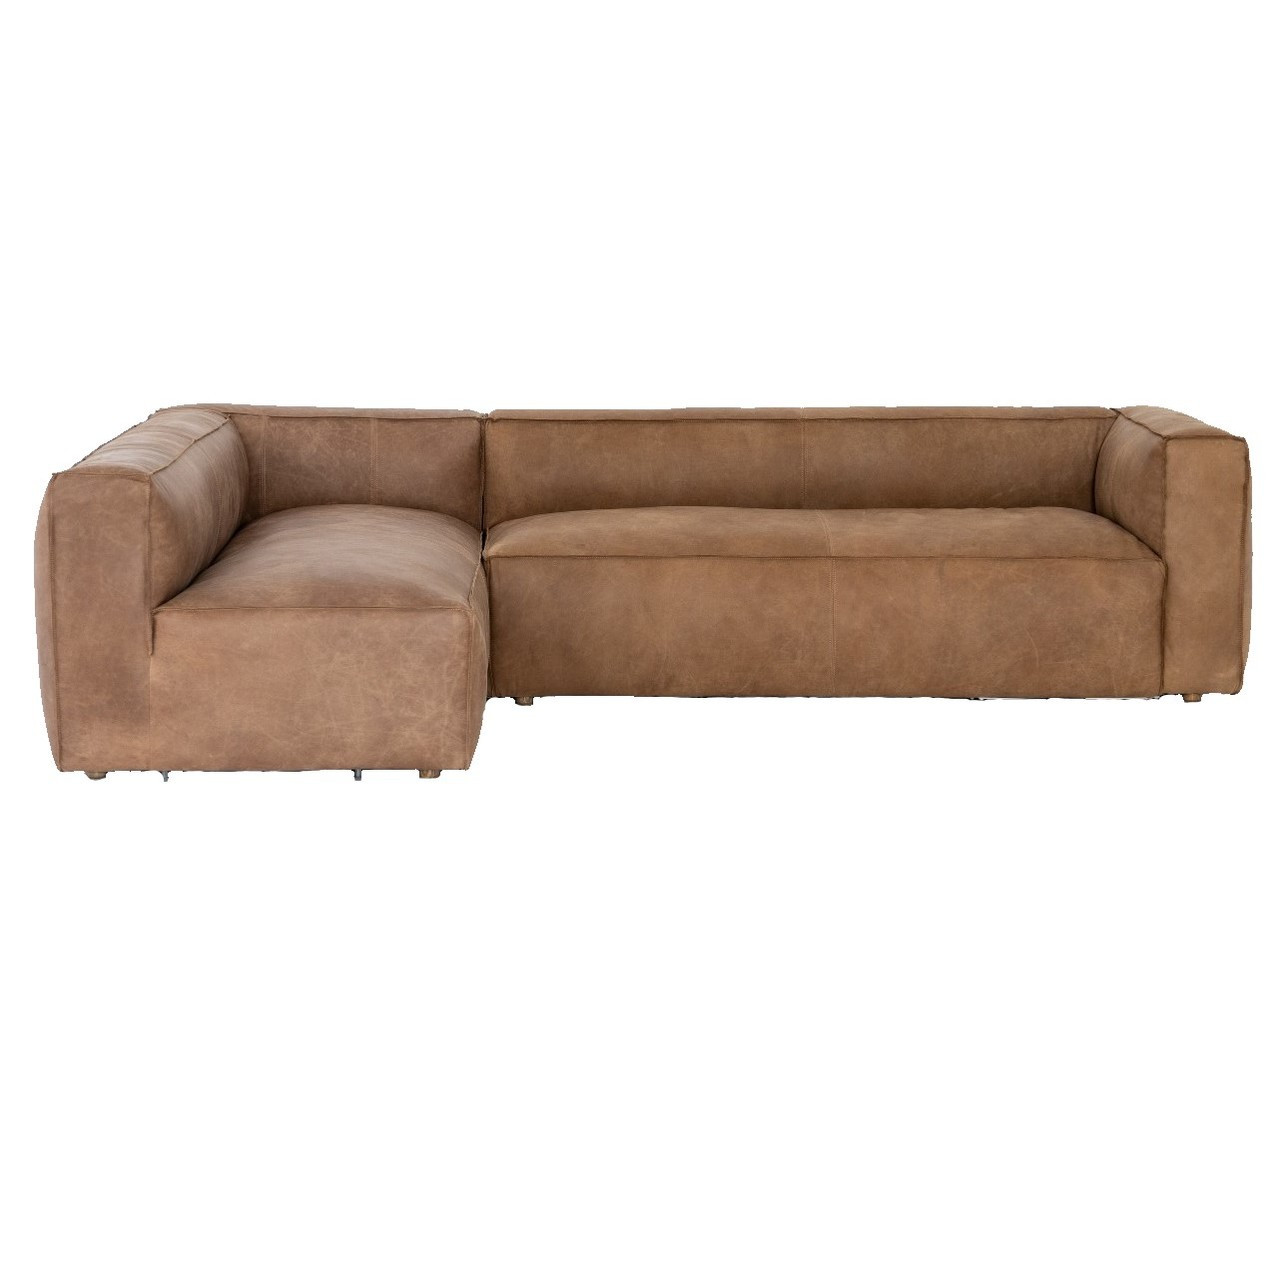 Nolita Tan Leather 2 Pc Modular Sectional Sofas 120 Zin Home